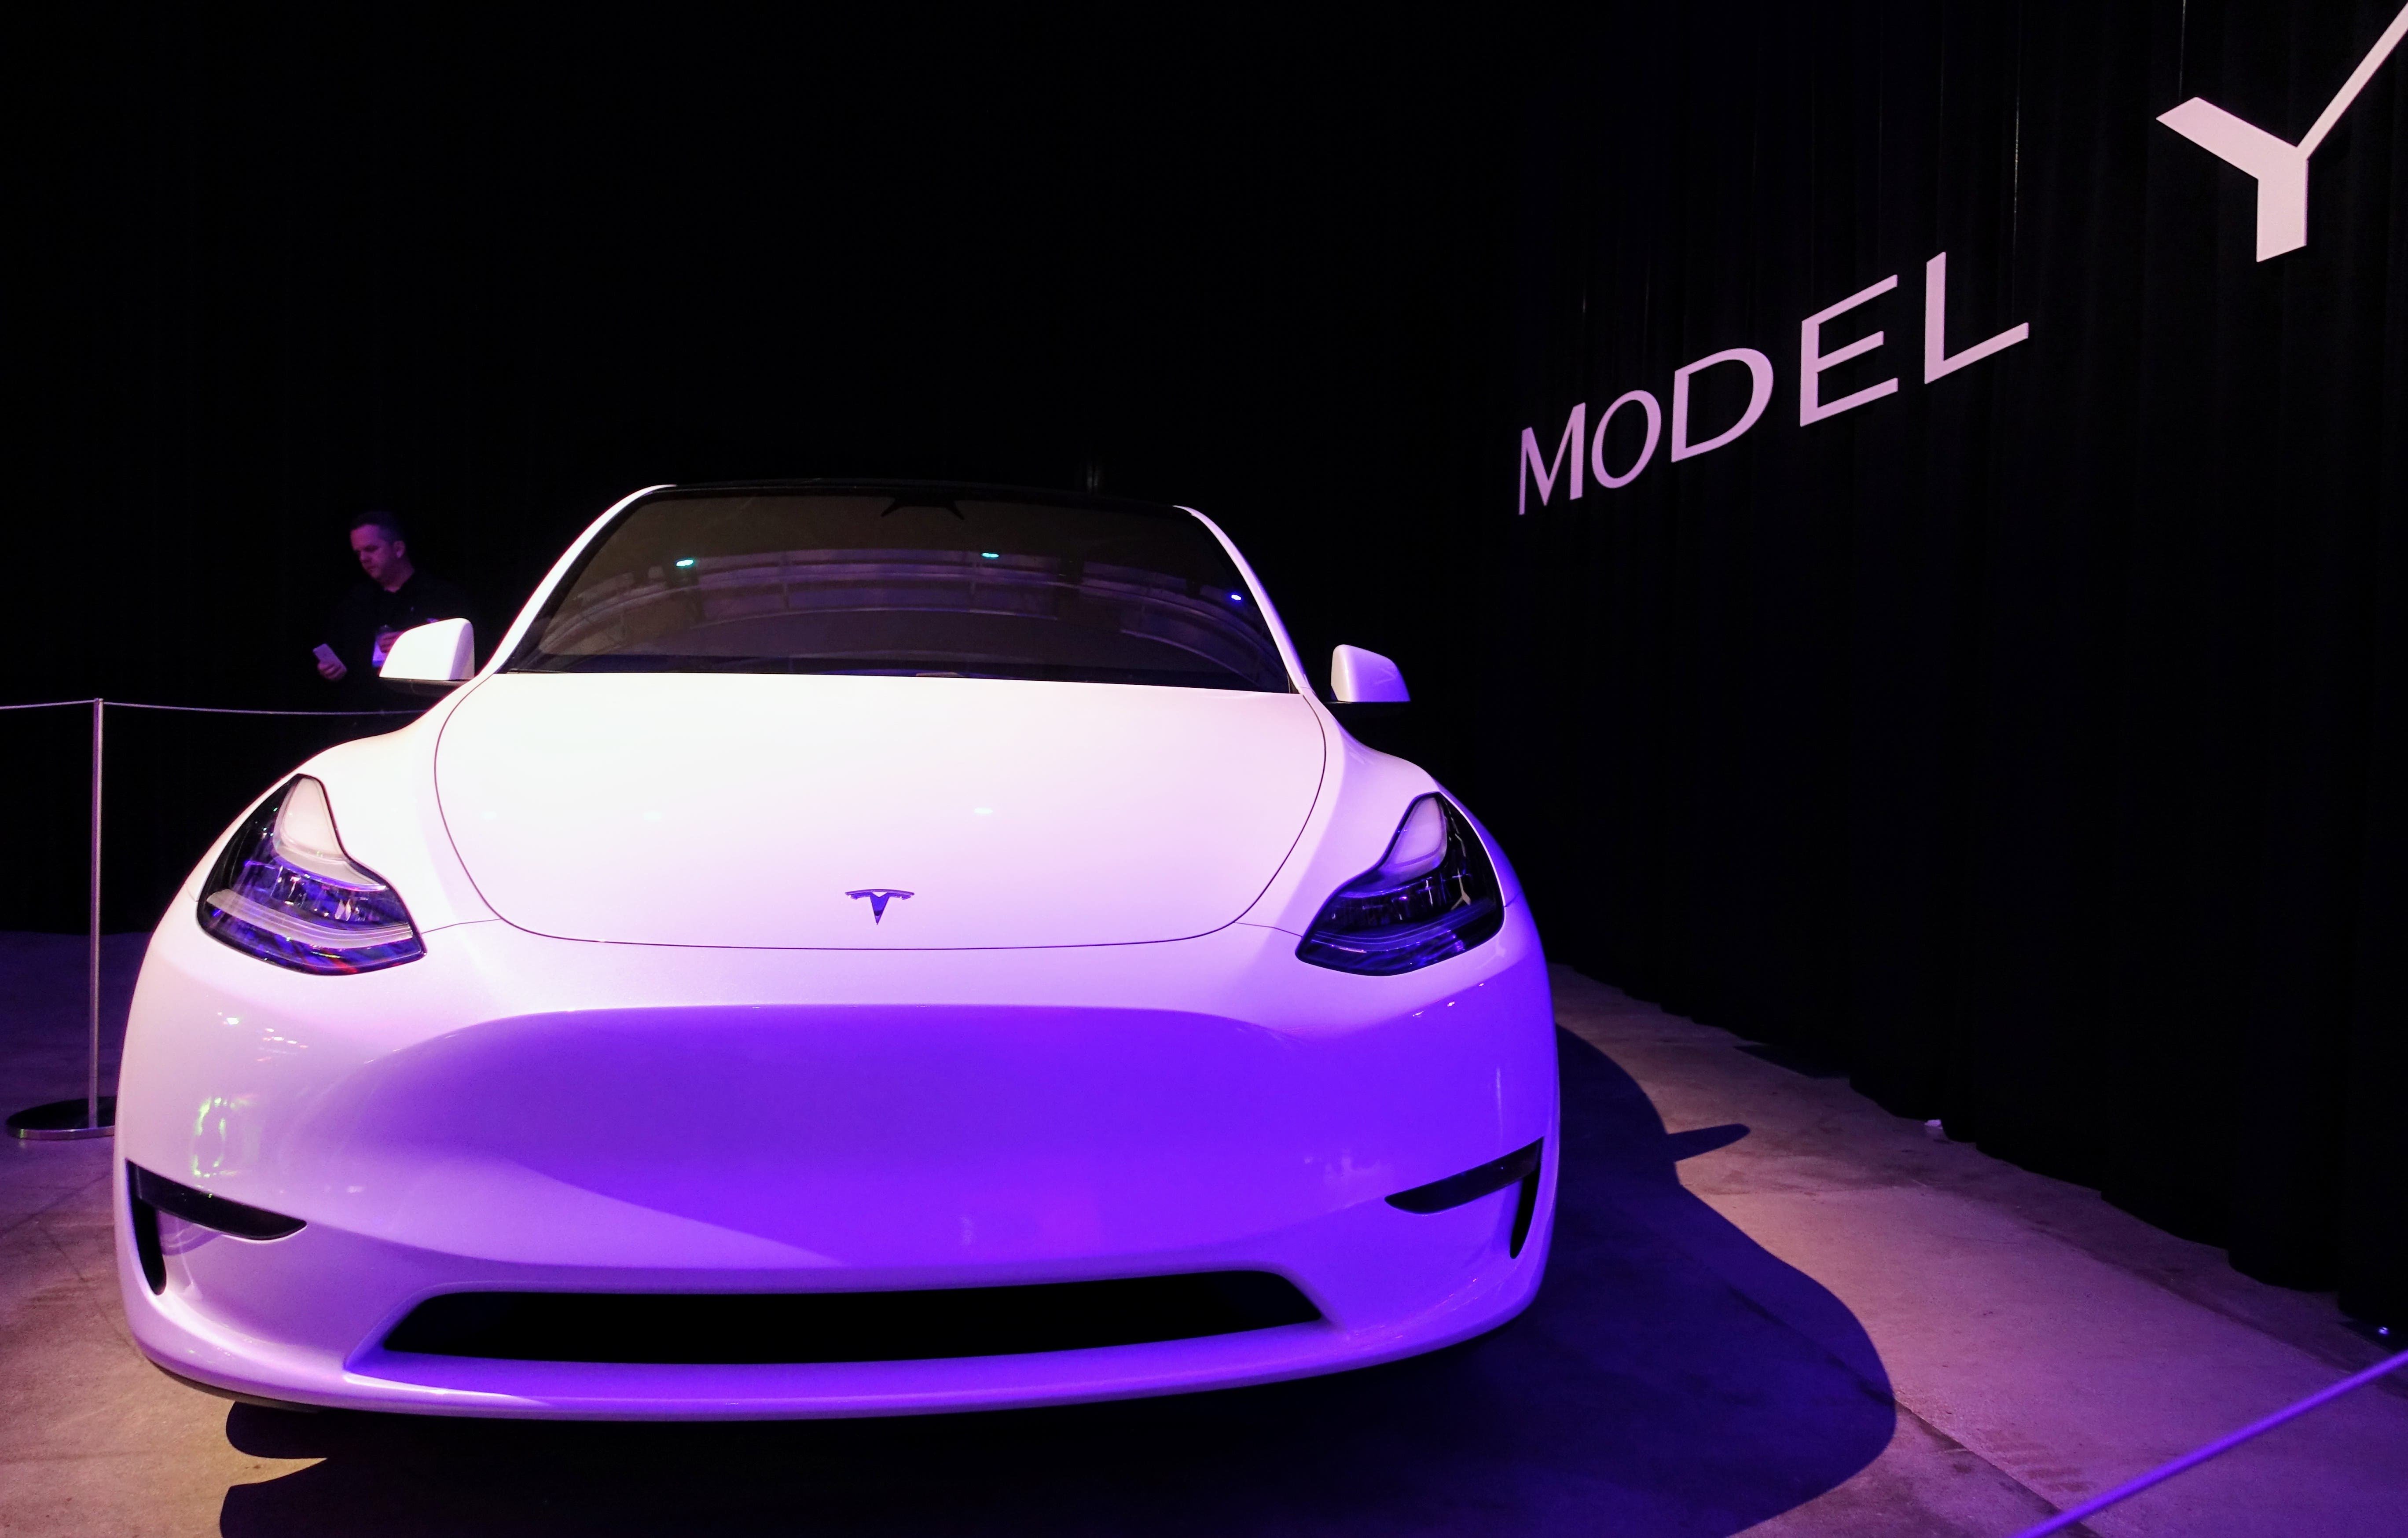 Our Tesla Model Y Review: CleanTechnica Goes For A Ride In